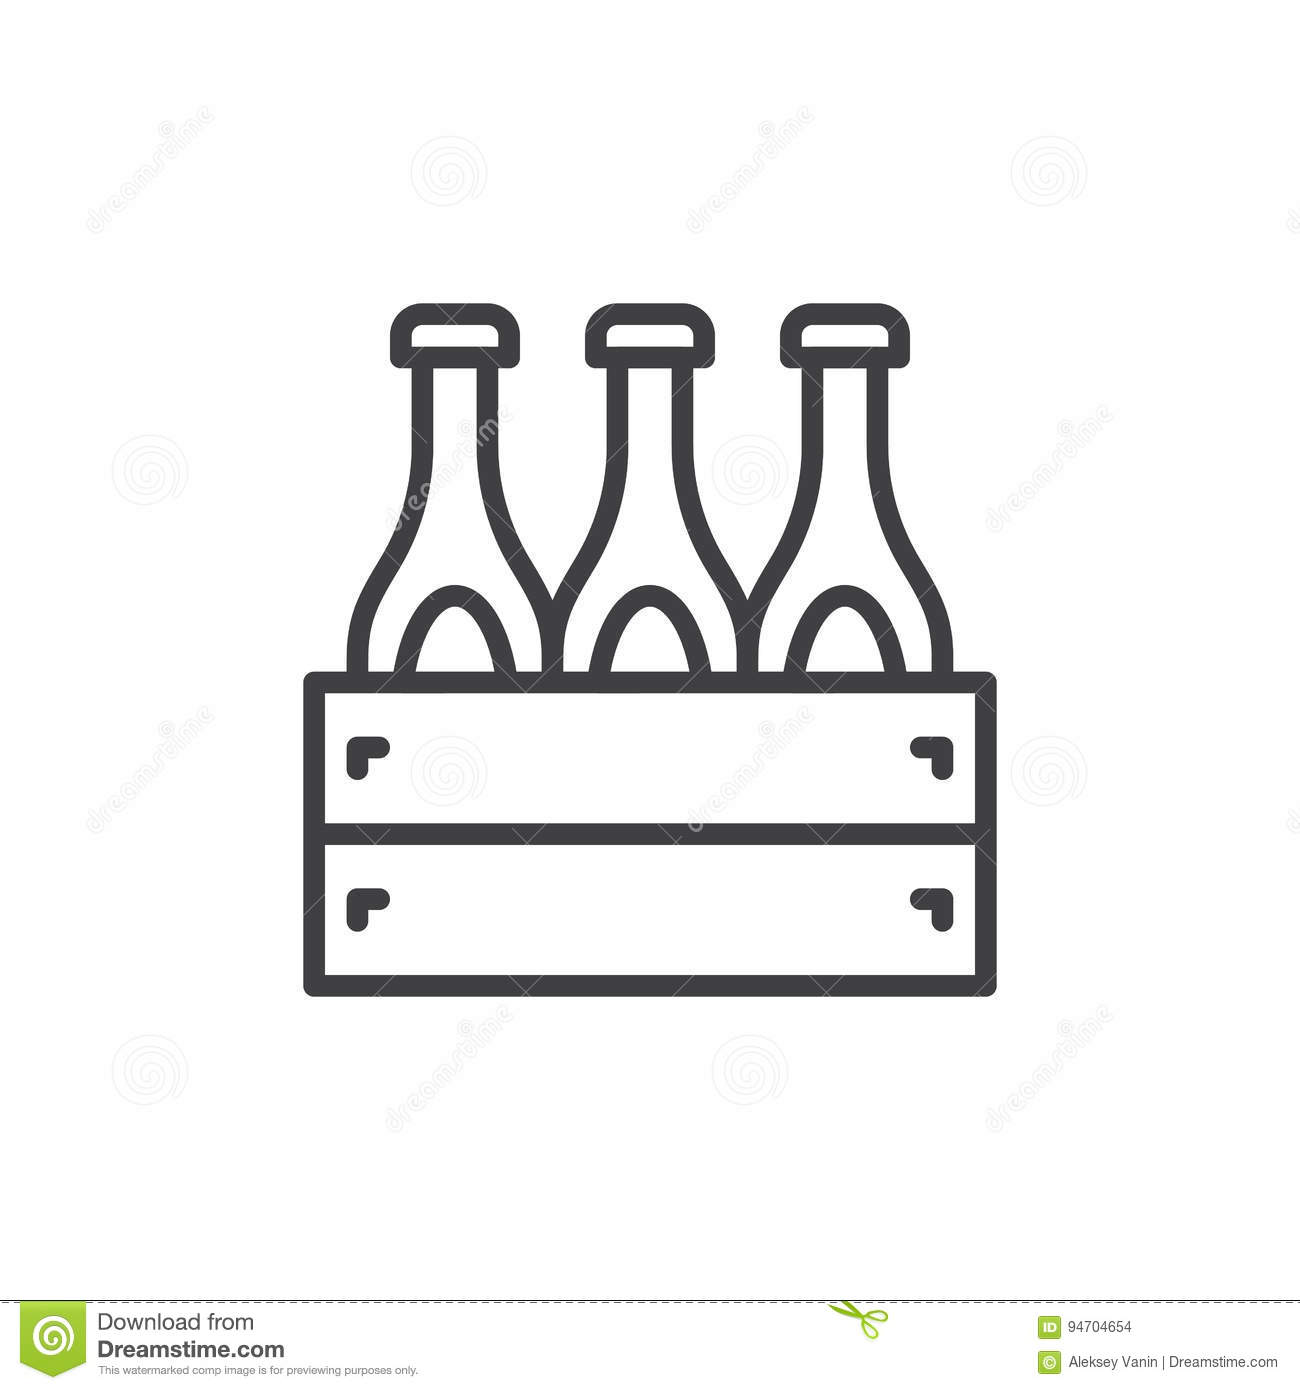 Case Of Beer Line Icon, Outline Vector Sign, Linear Style Pictogram.